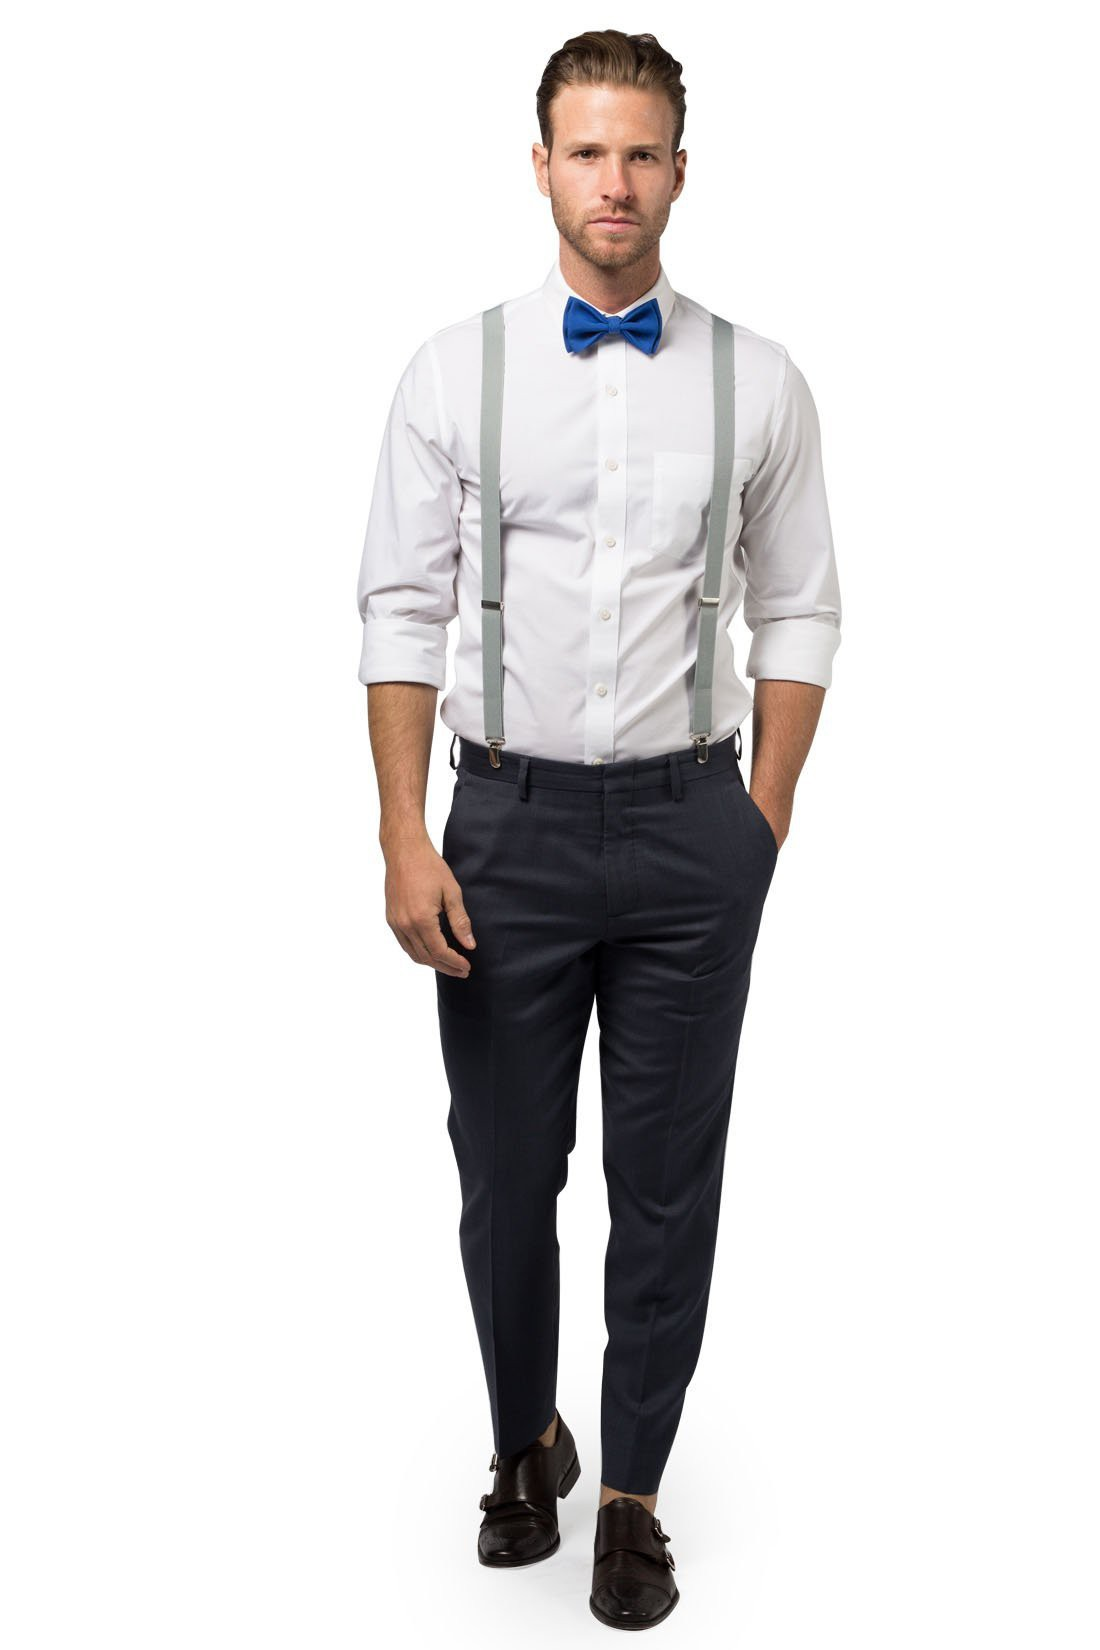 Royal Blue Suspenders and Bow tie Bow tie /& Suspender Sets Royal Blue